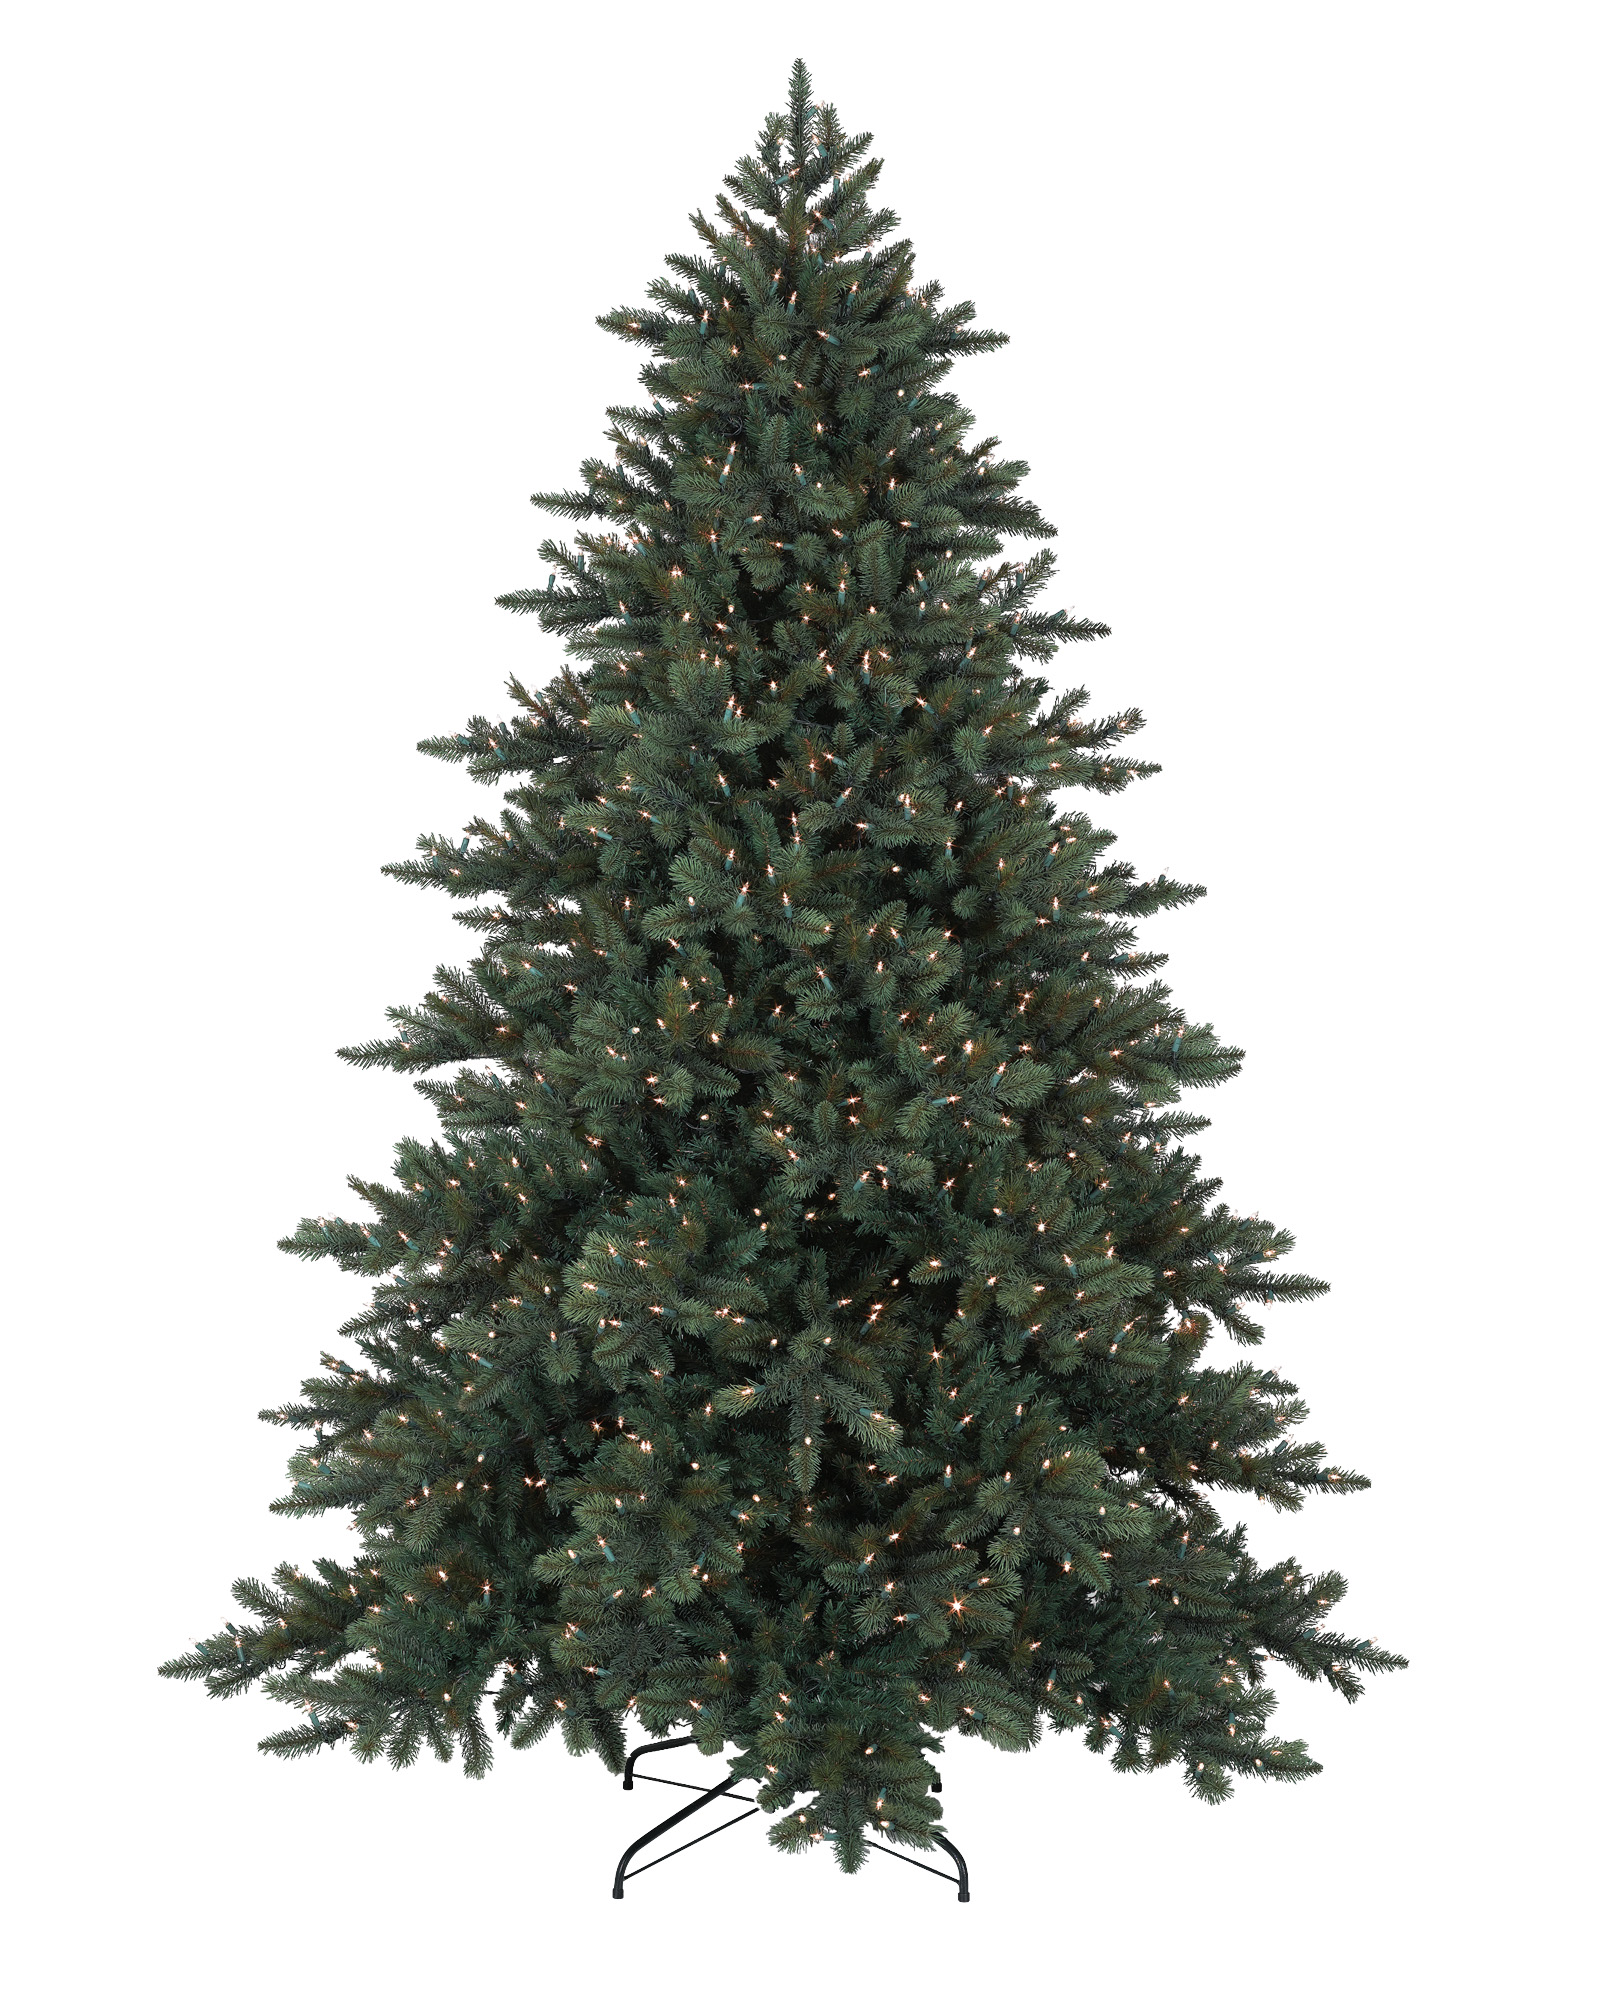 Christmas Tree Pick Up.News Chrismas Tree Collection Schedule January 9 2017